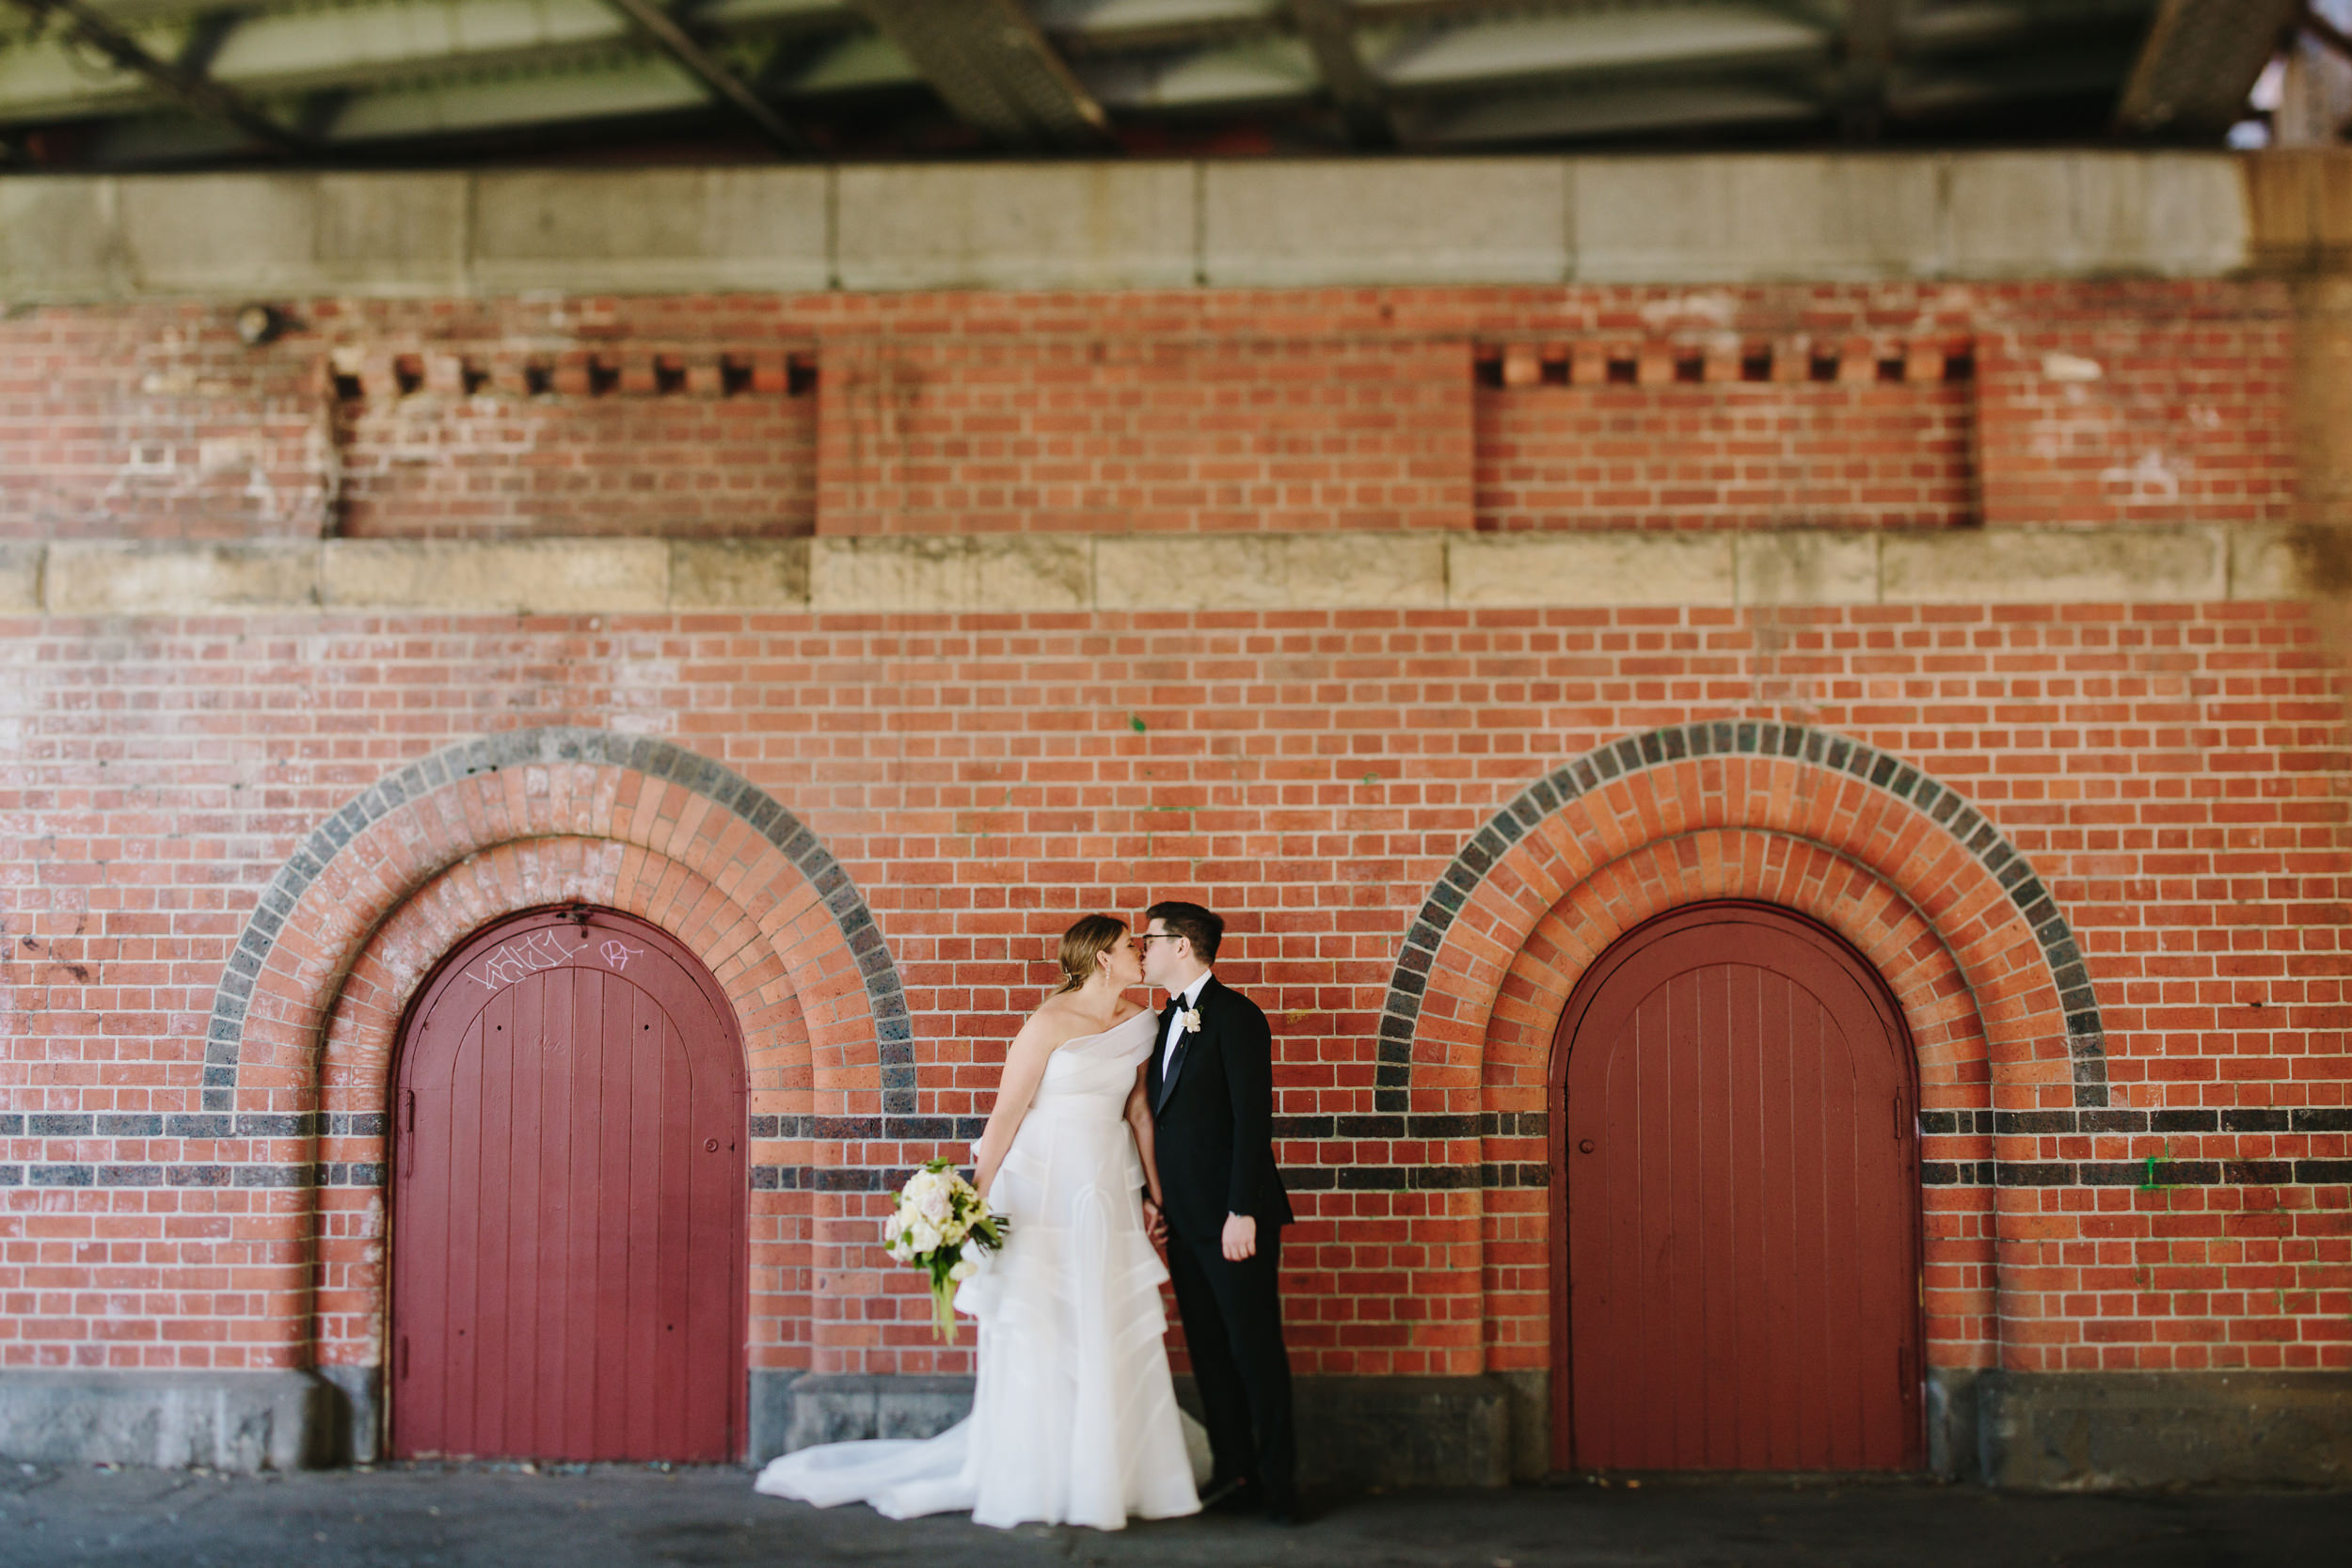 Melbourne_City_Rooftop_Wedding_Tyson_Brigette074.JPG